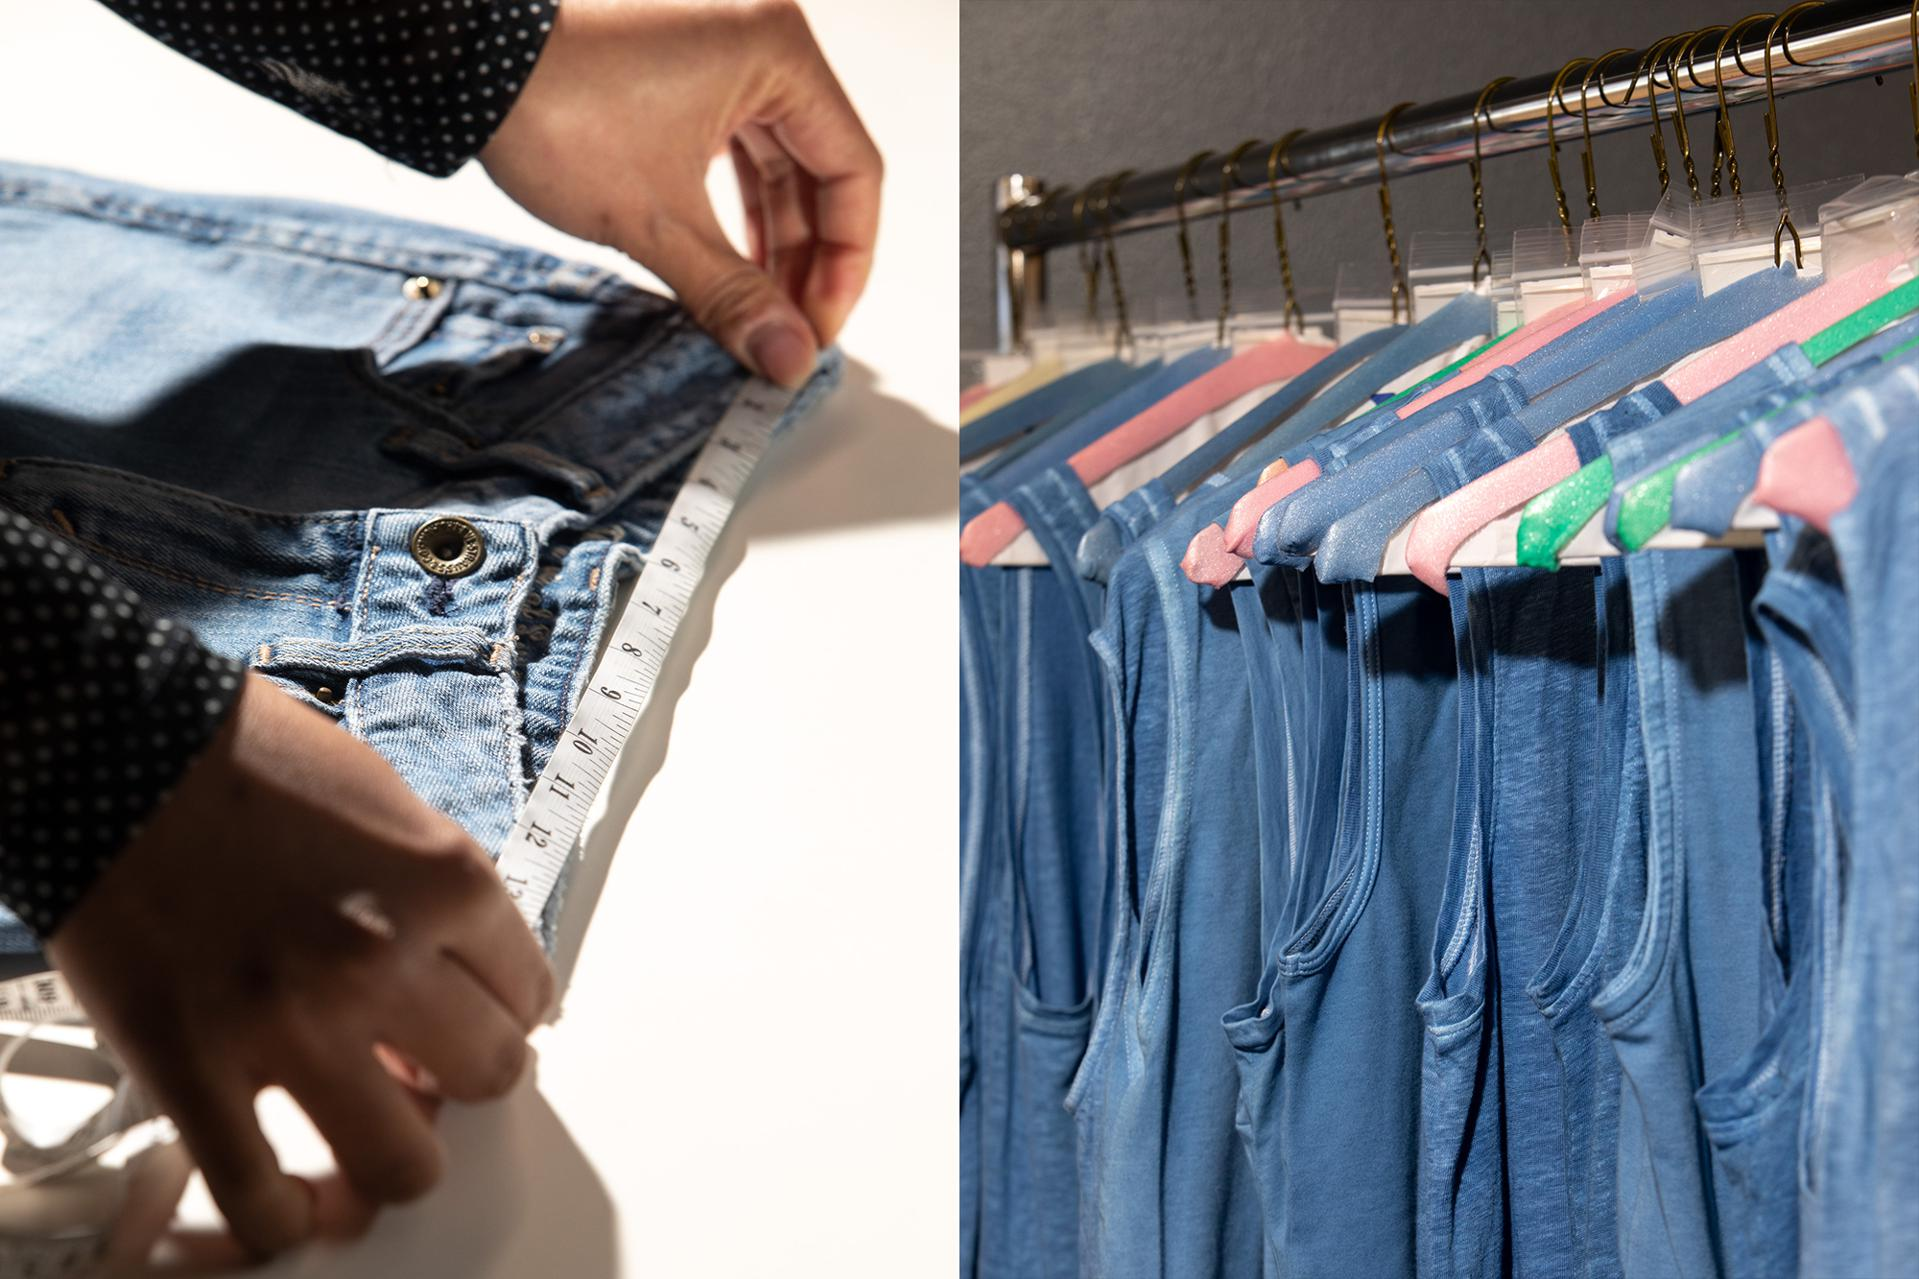 """Levi's jumped into resale after watching shoppers snap up vintage jeans elsewhere. """"Participating in resale is critical to staying relevant to our customers. It also helps Levi's reach new customers,"""" says Jen Sey, brand president at Levi Strauss & Co."""